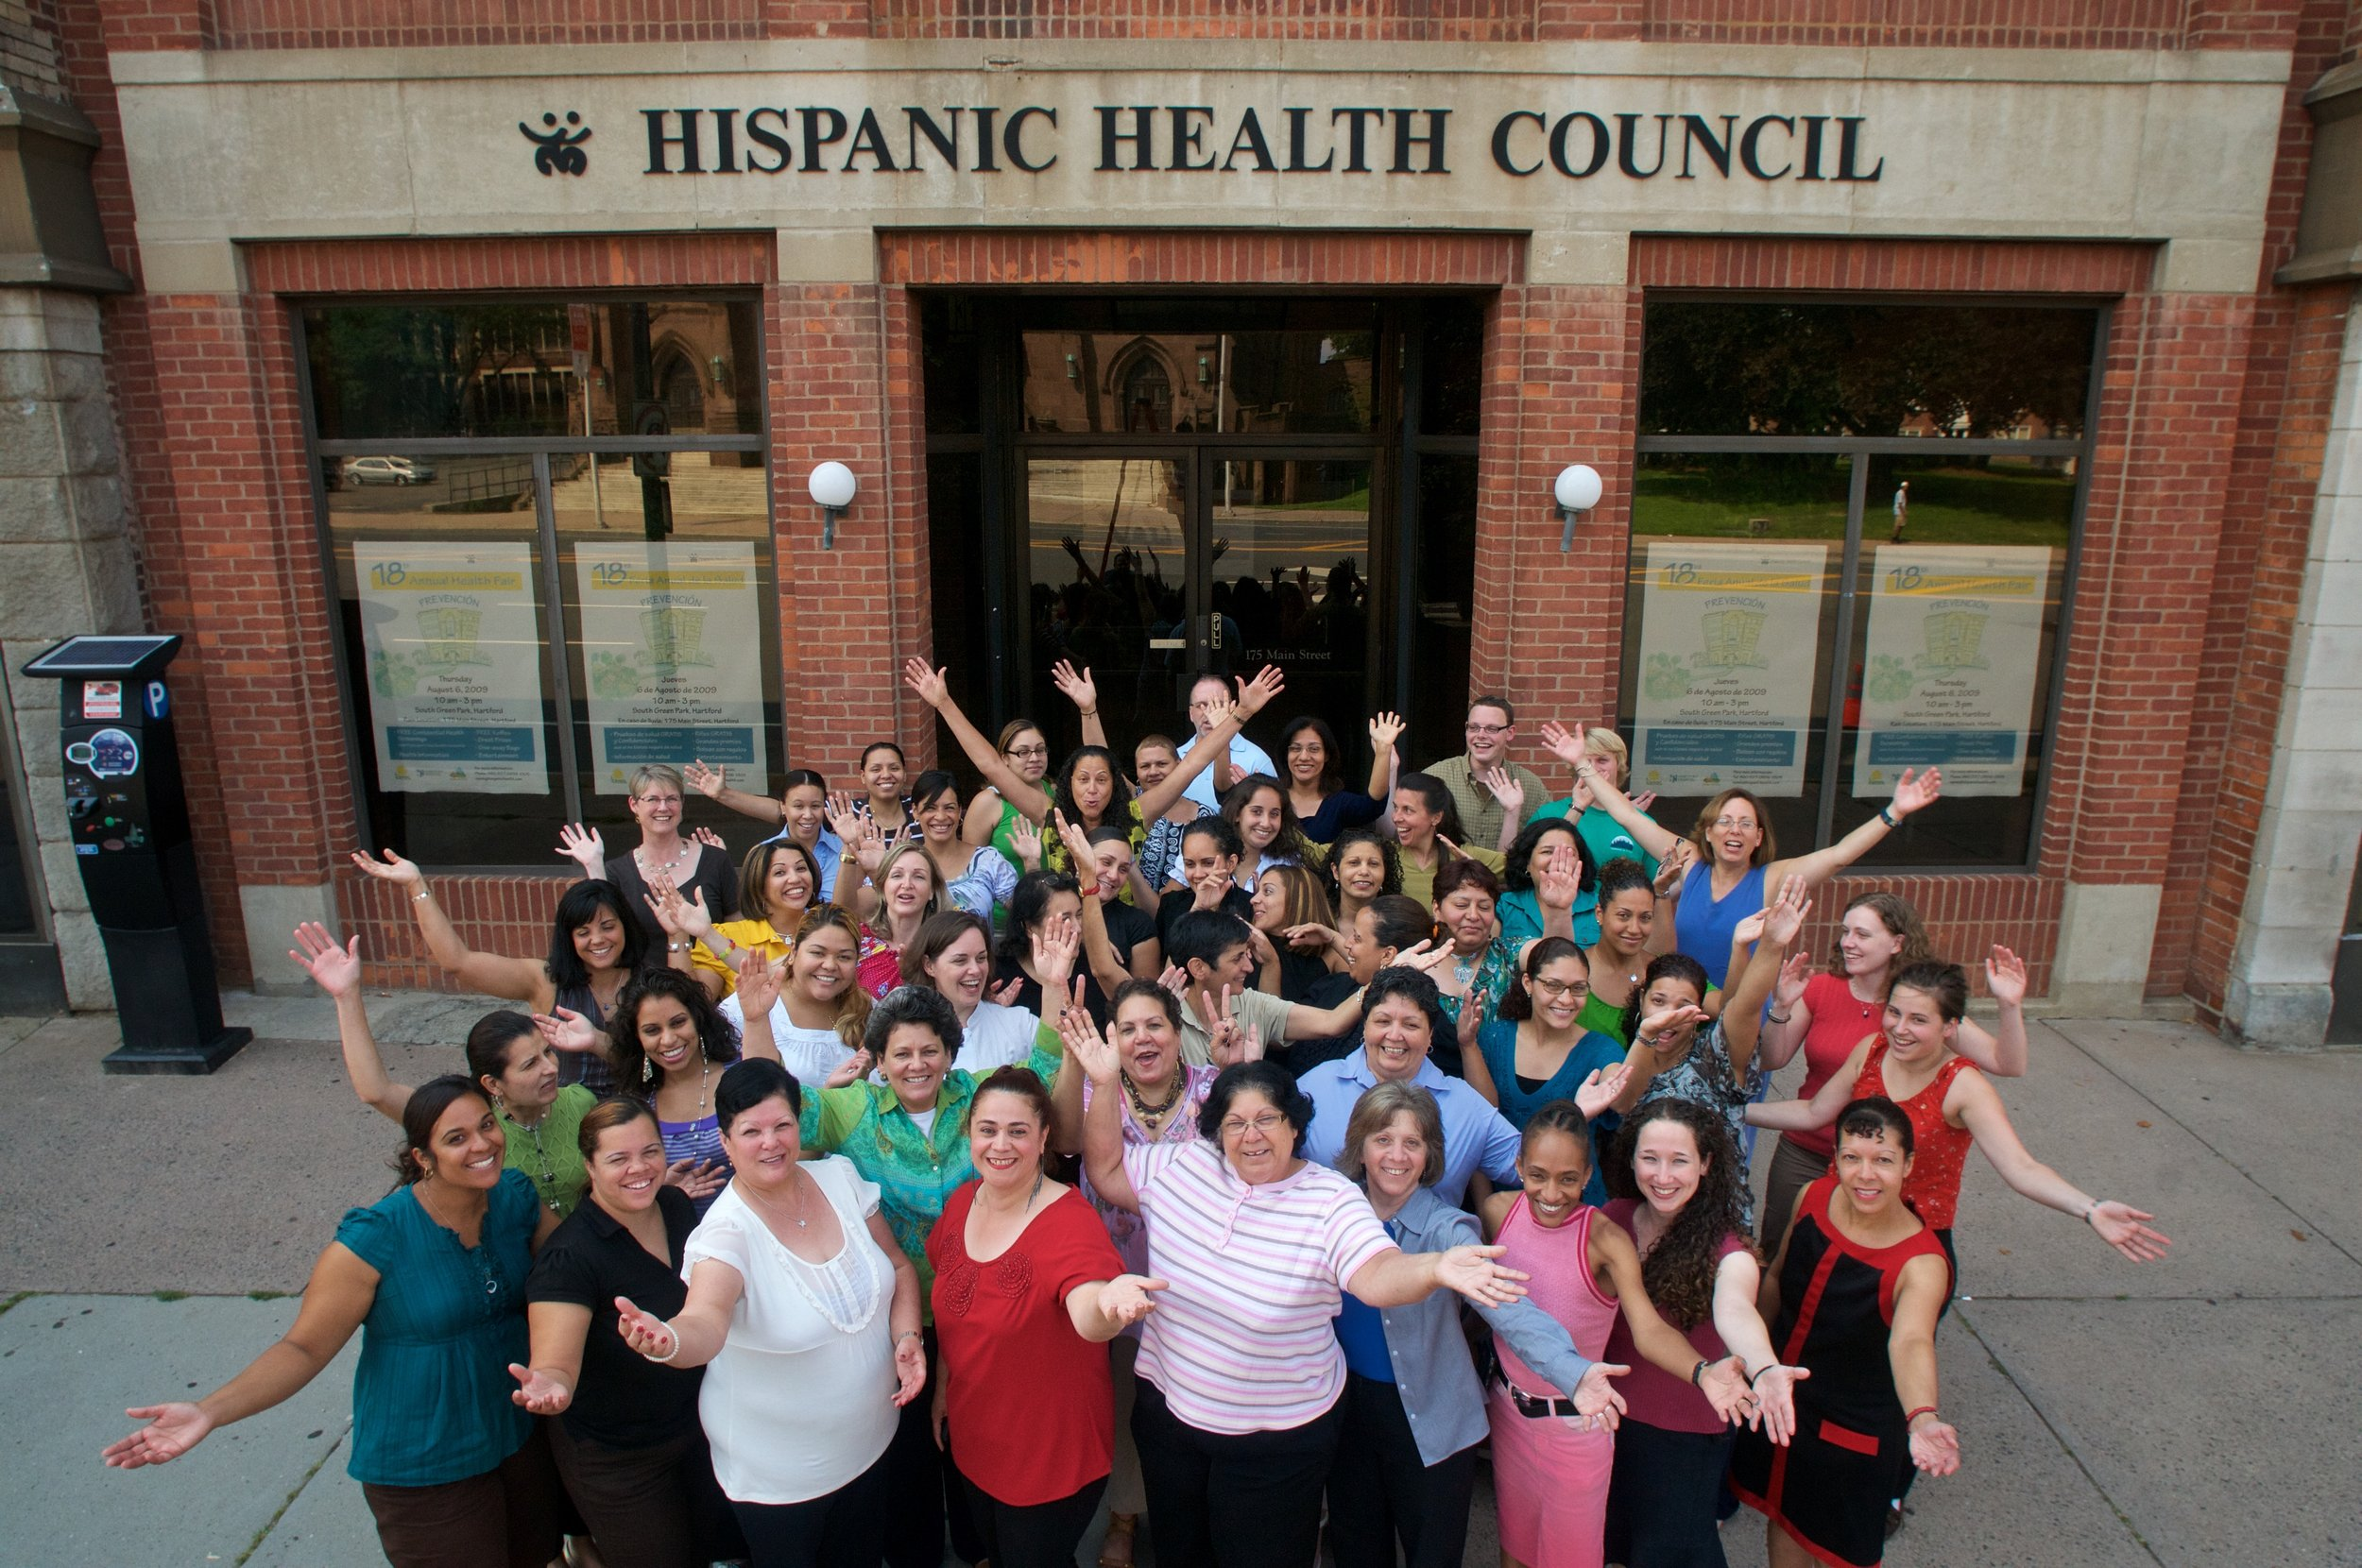 Hispanic Health Council